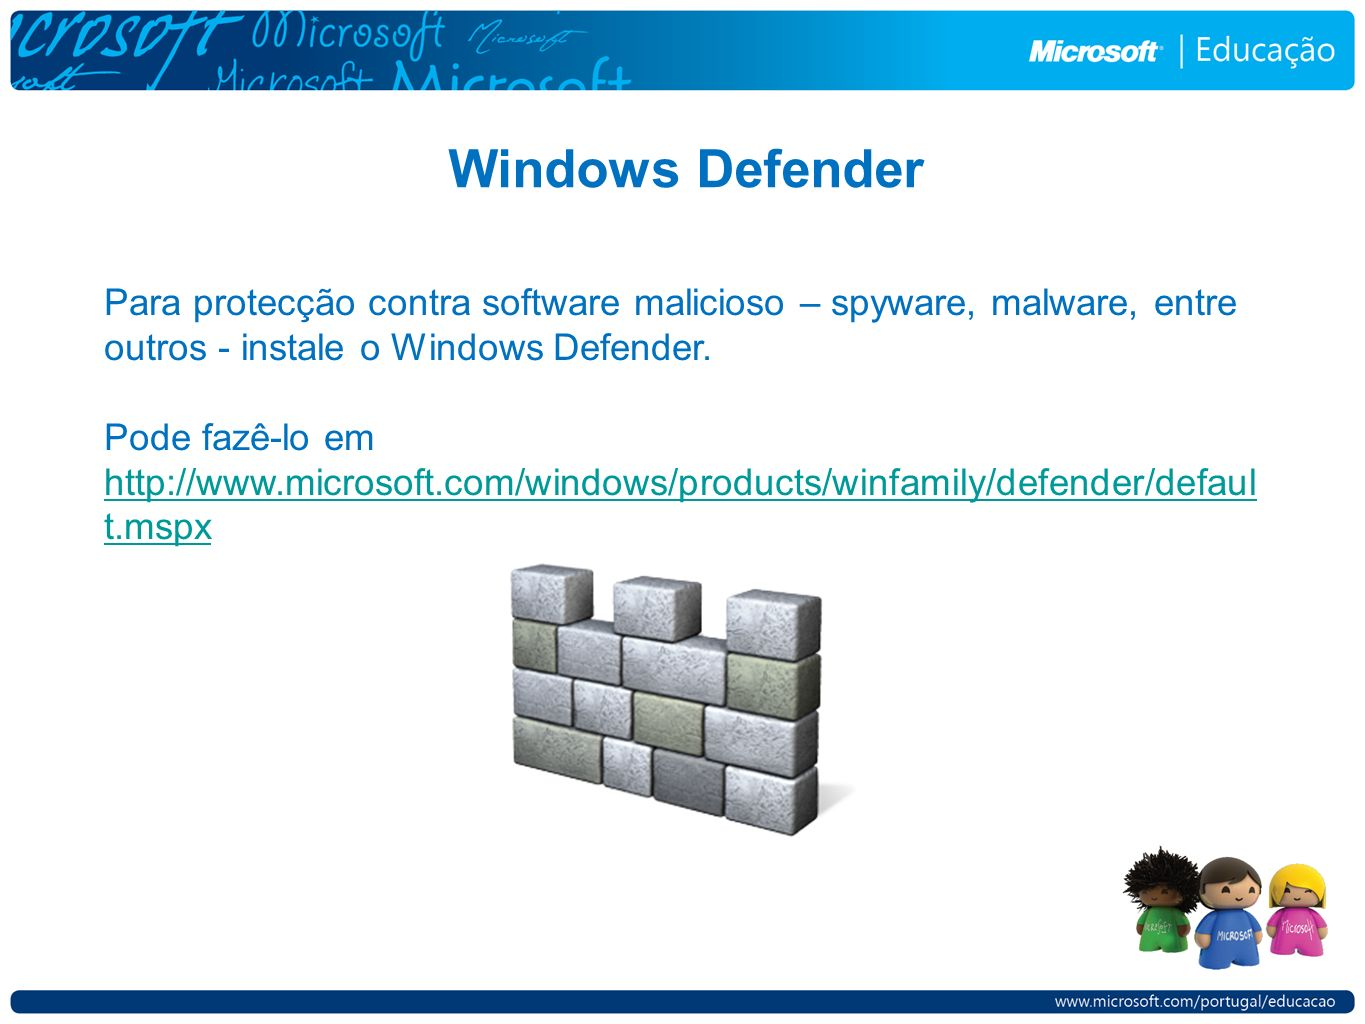 Windows Defender Para protecção contra software malicioso – spyware, malware, entre outros - instale o Windows Defender.